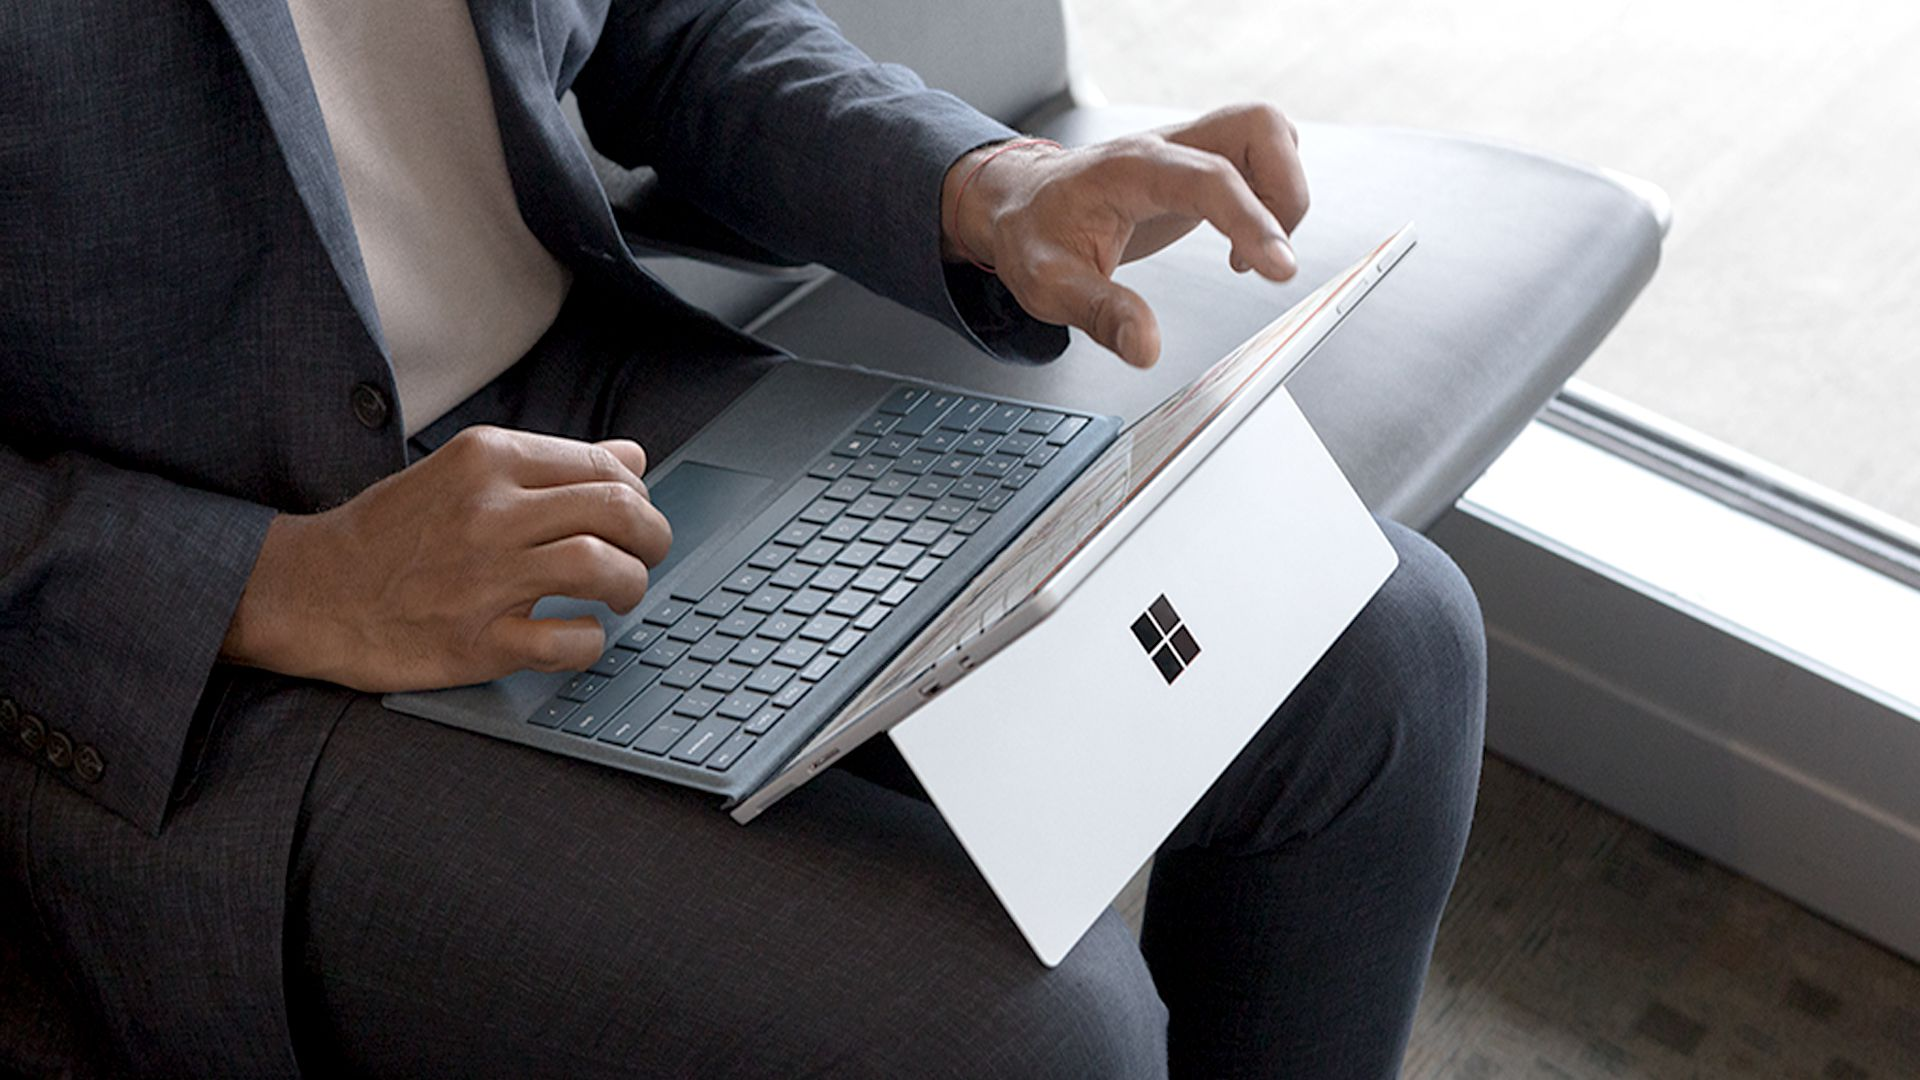 Smart Buy Auto >> How to Fix a Surface Pro That Won't Turn On